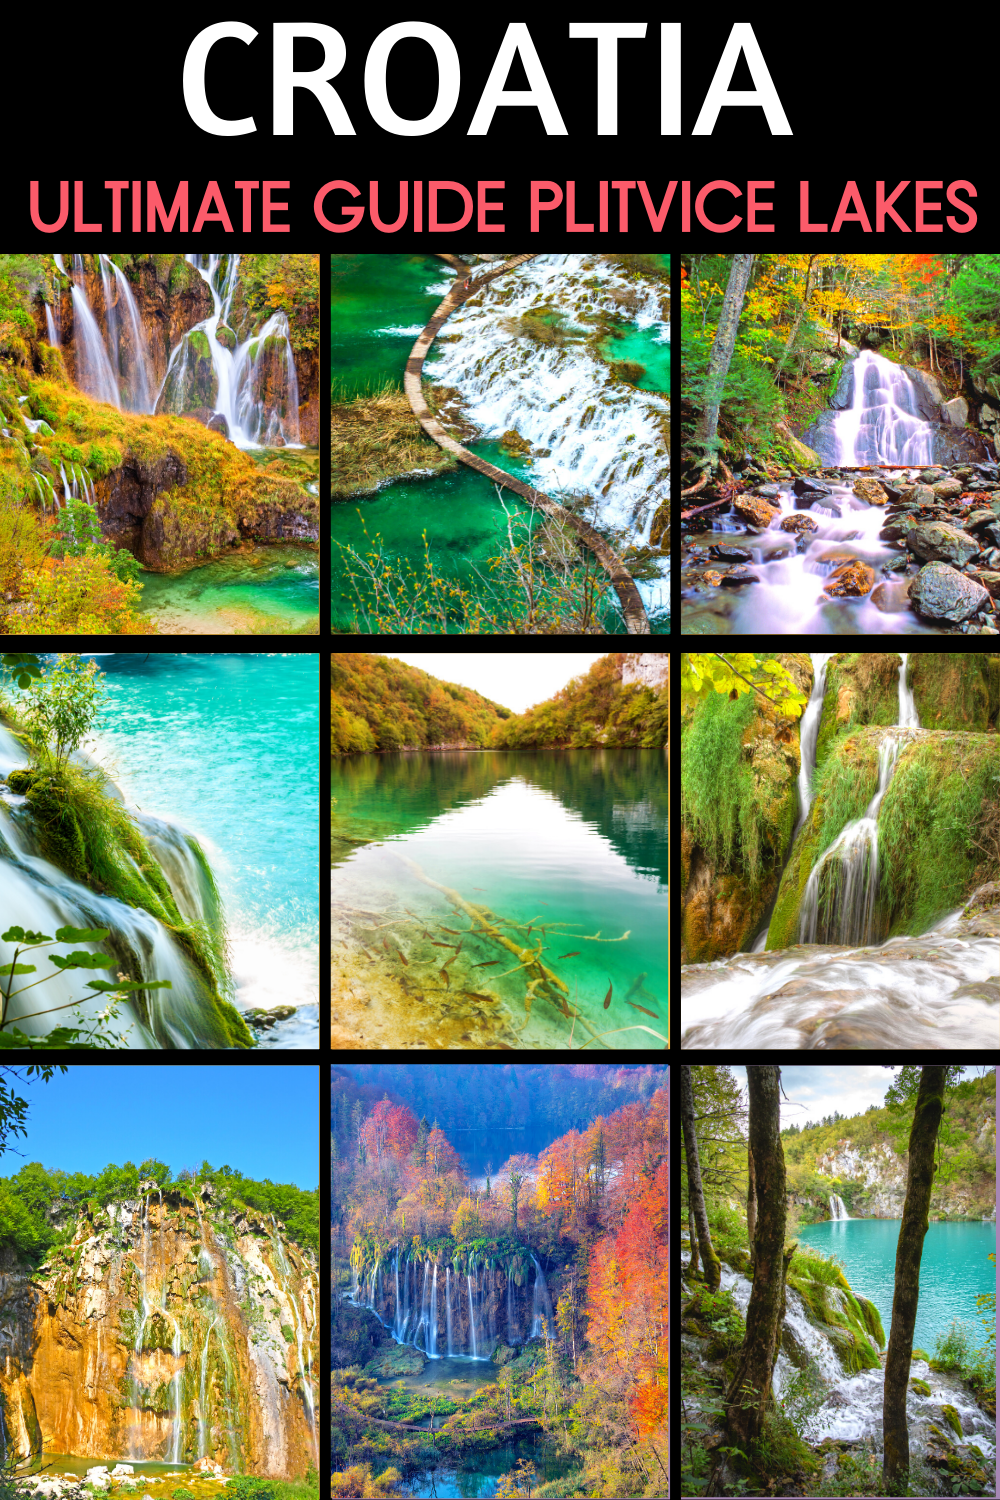 Travel Guide & Tips for Visiting Plitvice Lakes National Park in Croatia